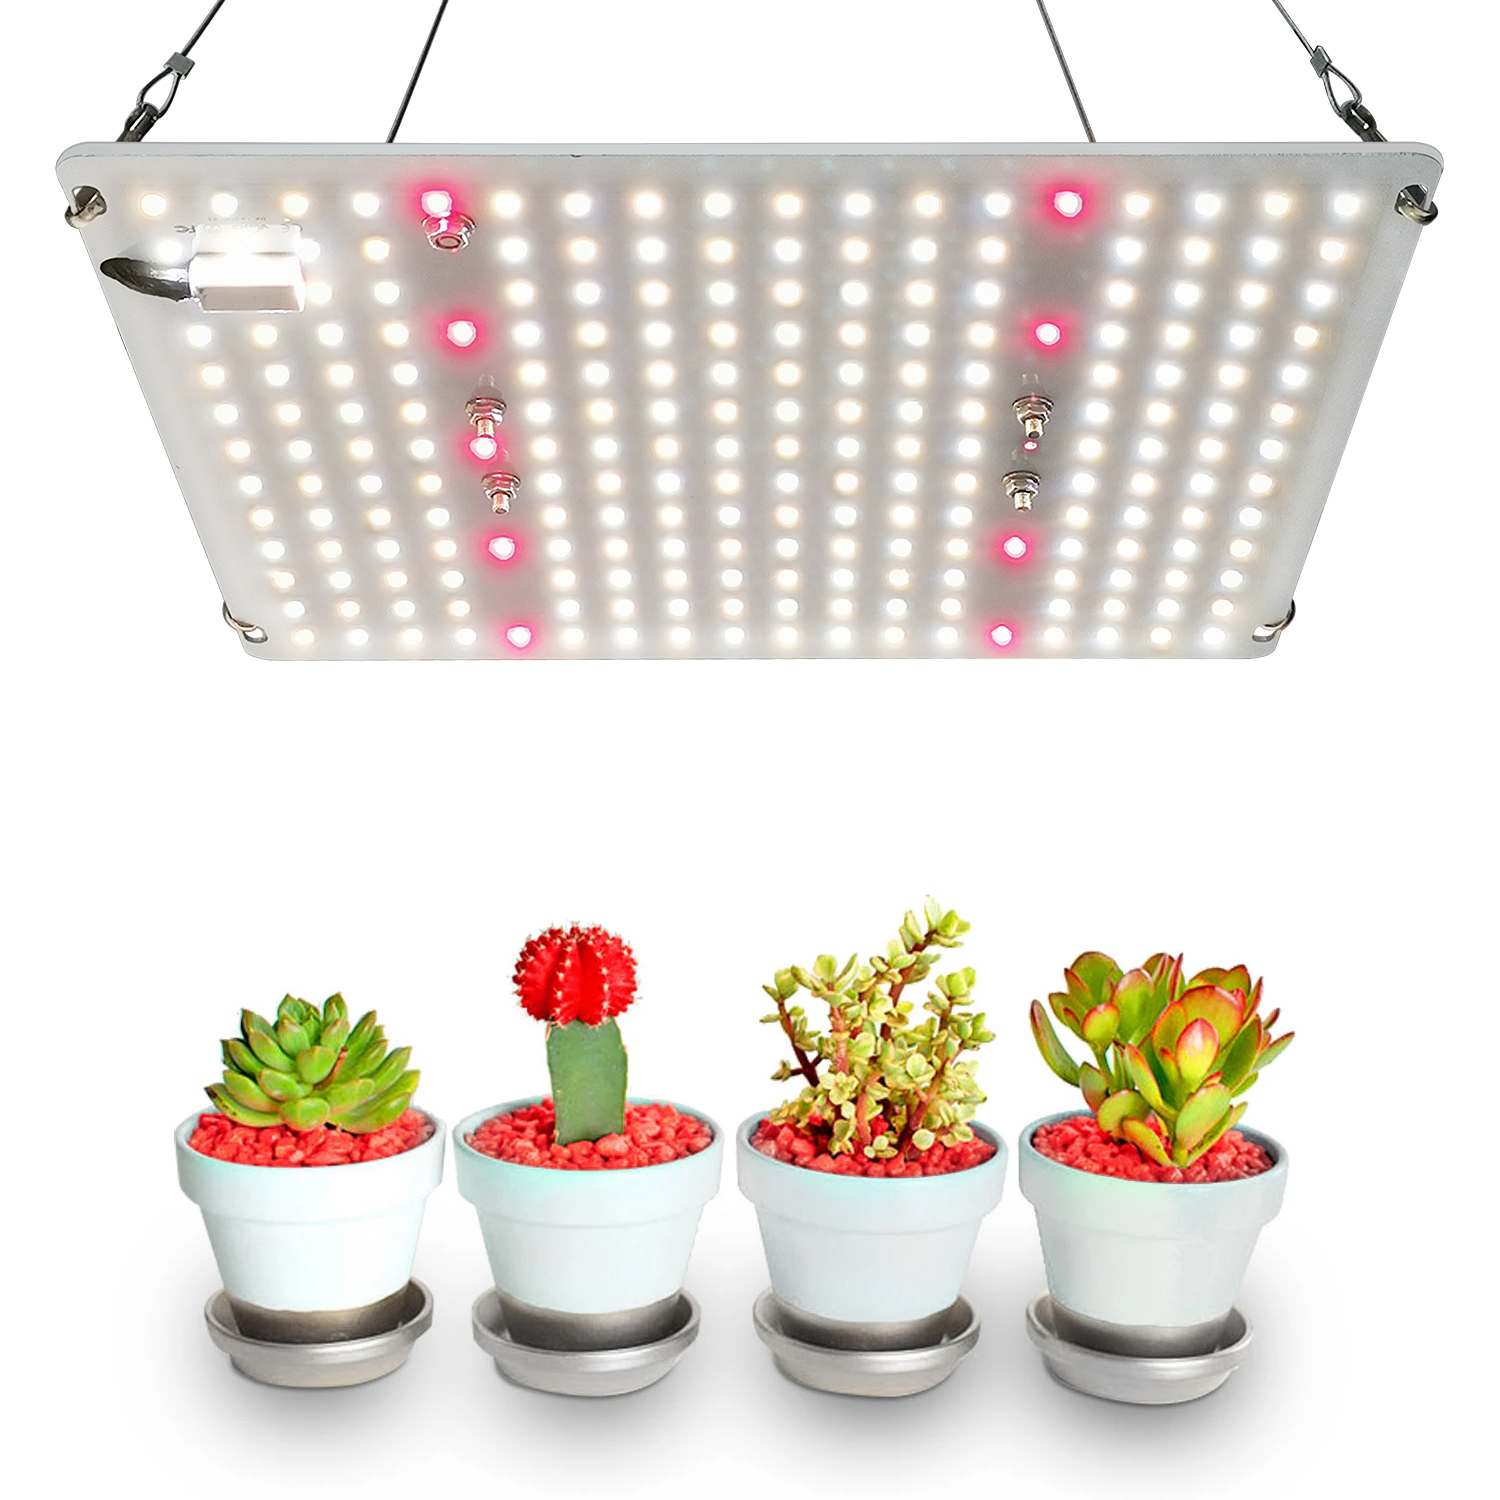 2020 2.7umol/<strong>J</strong> new launch hlg600 XLG240 quantum 600W 300w 260w 100 Watt <strong>220</strong> Watt for sf1000 sf 1000 sf-1000 Indoor Plants